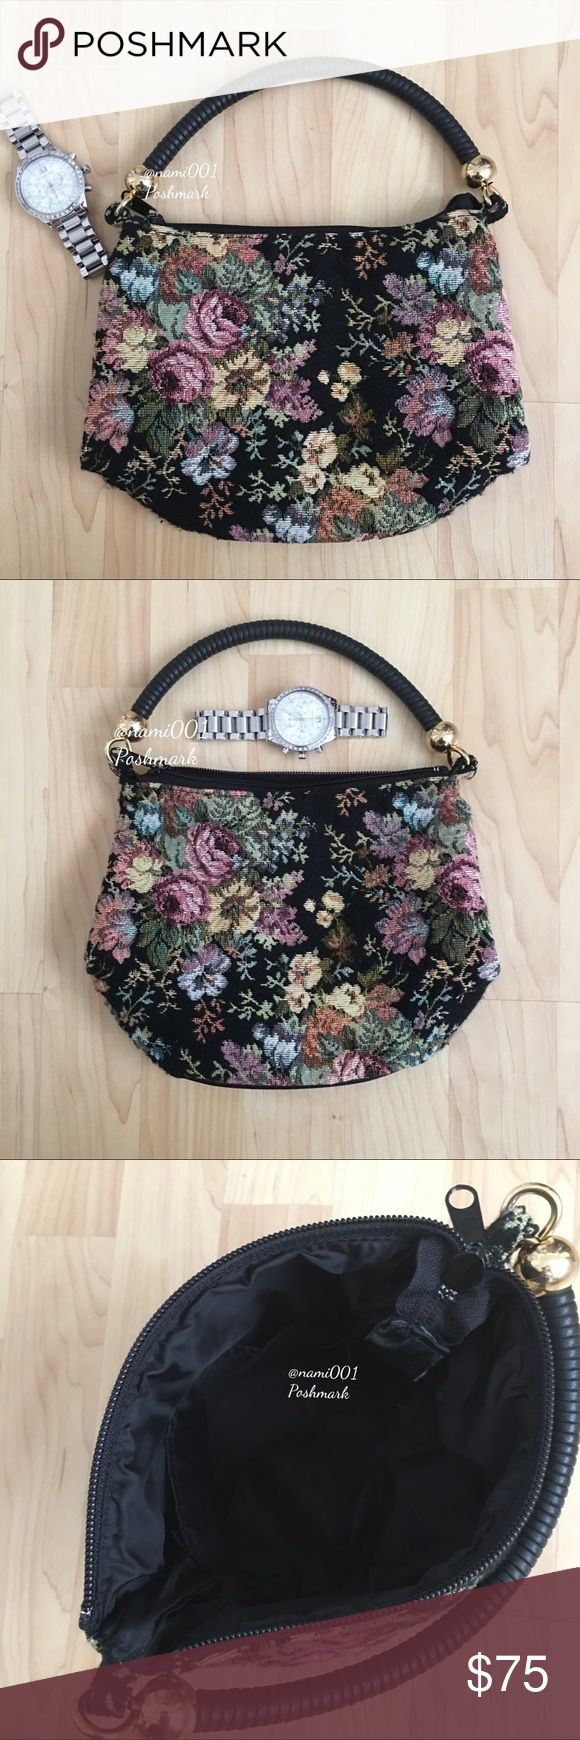 Small Floral Bag Purse This adorable small floral bag comes to you straight from…